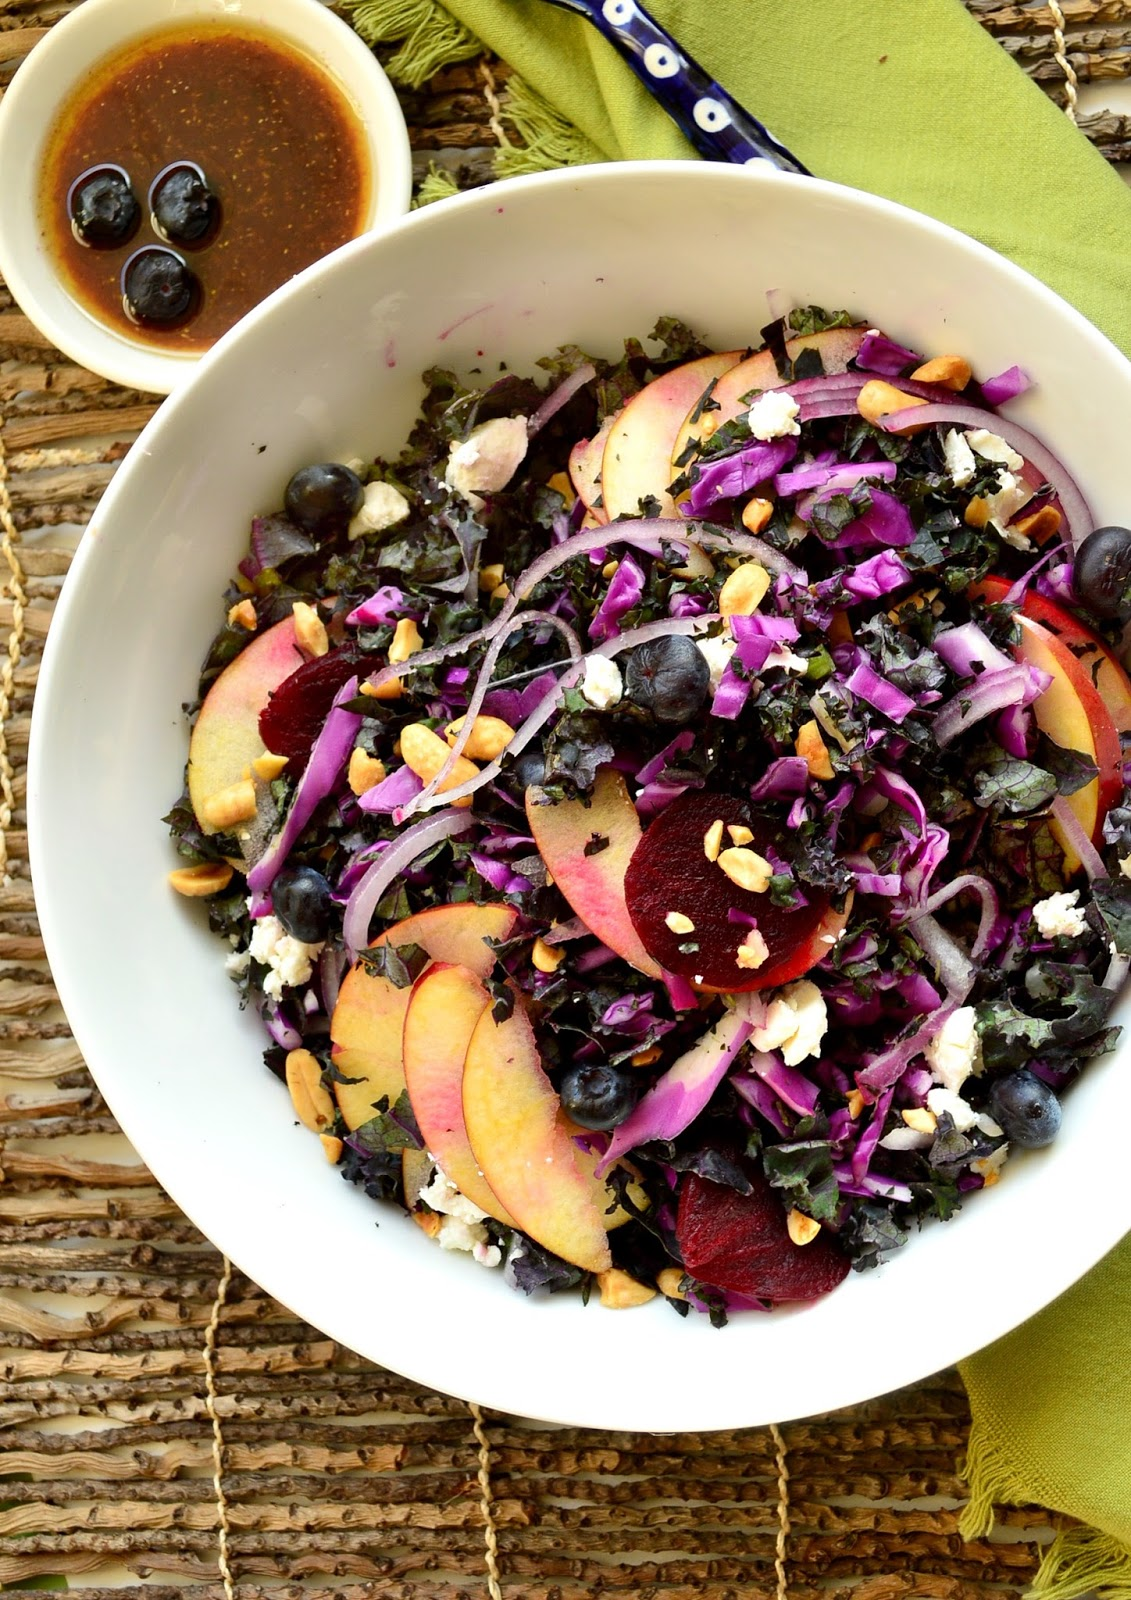 This purple kale salad with blueberries, apples, beets, peanuts and goat's cheese also has the most wonderful blueberry vinaigrette. Add some color to you life with this awesome salad! www.thisishowicook.com #salad #kale #blueberries